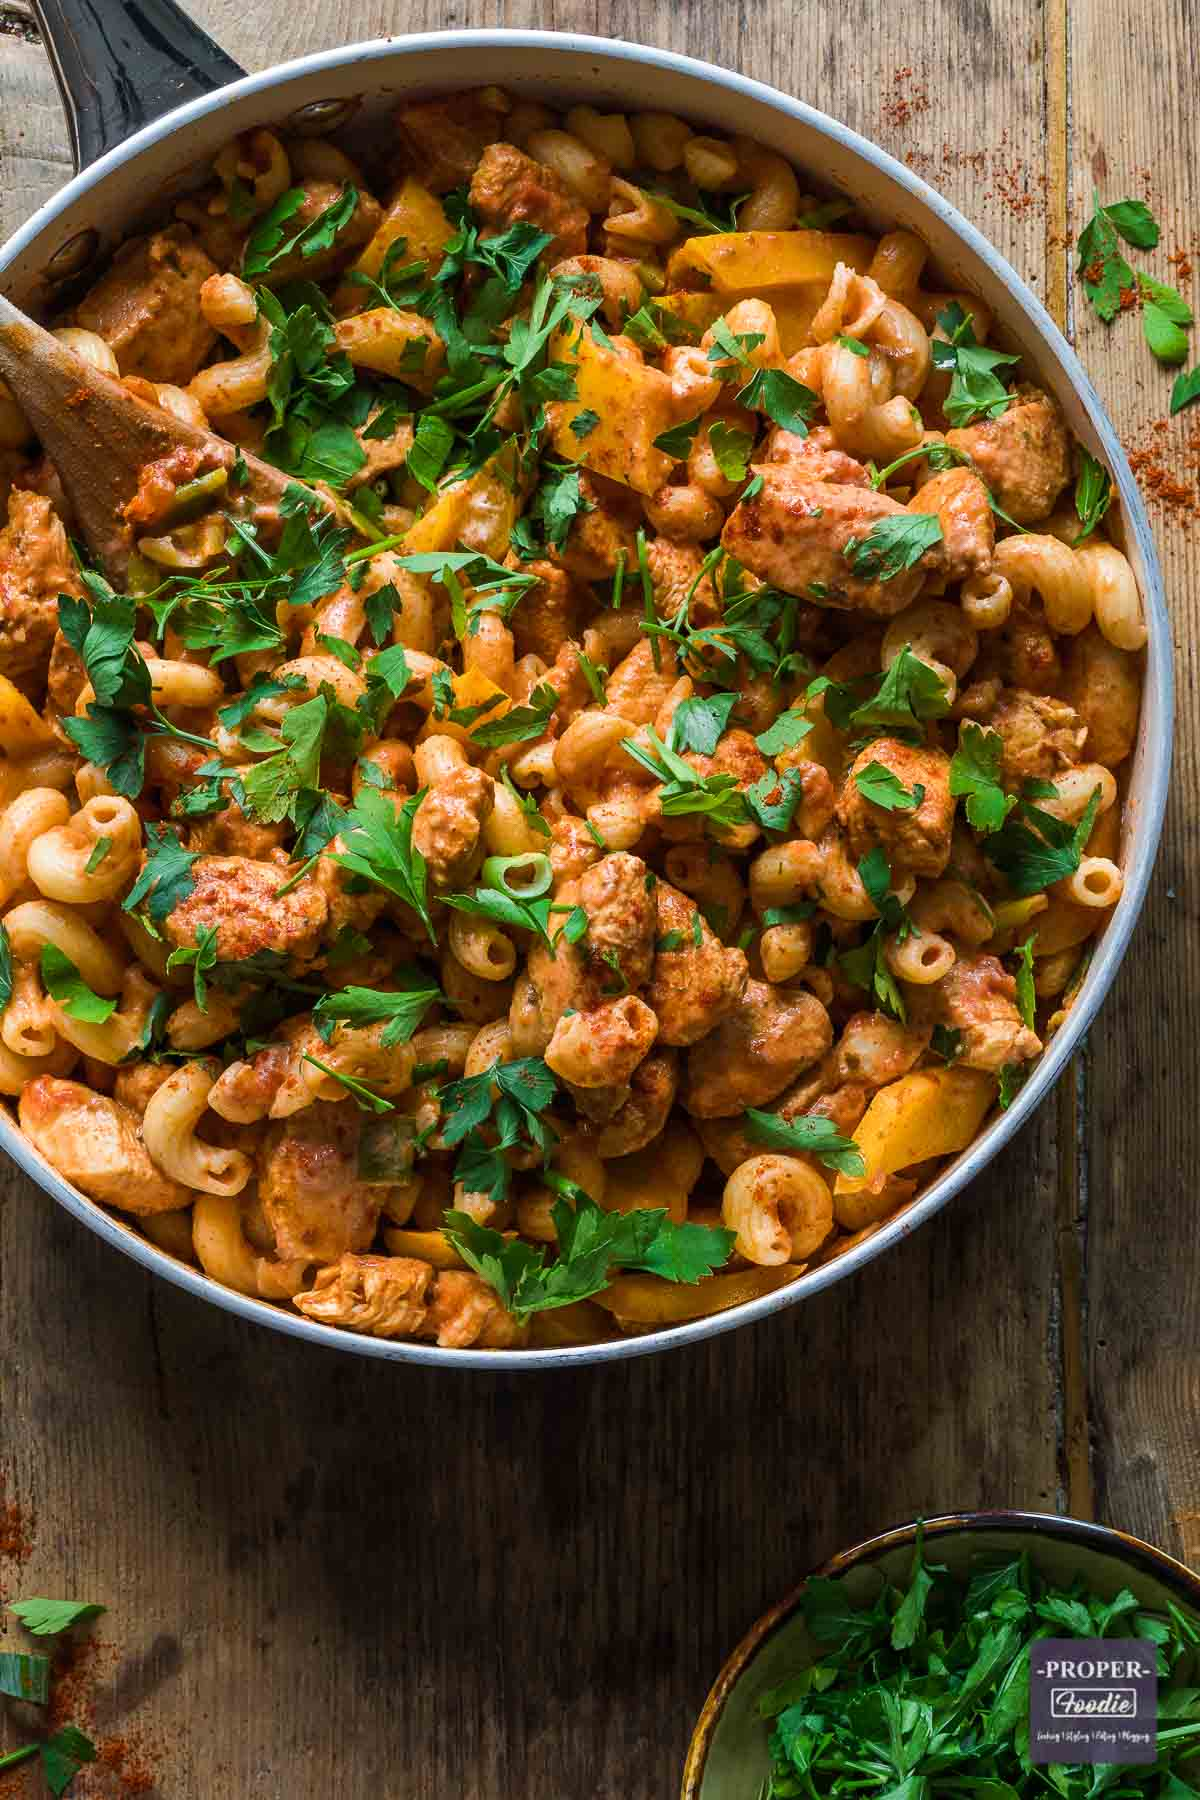 A large pan filled with Cajun chicken pasta.